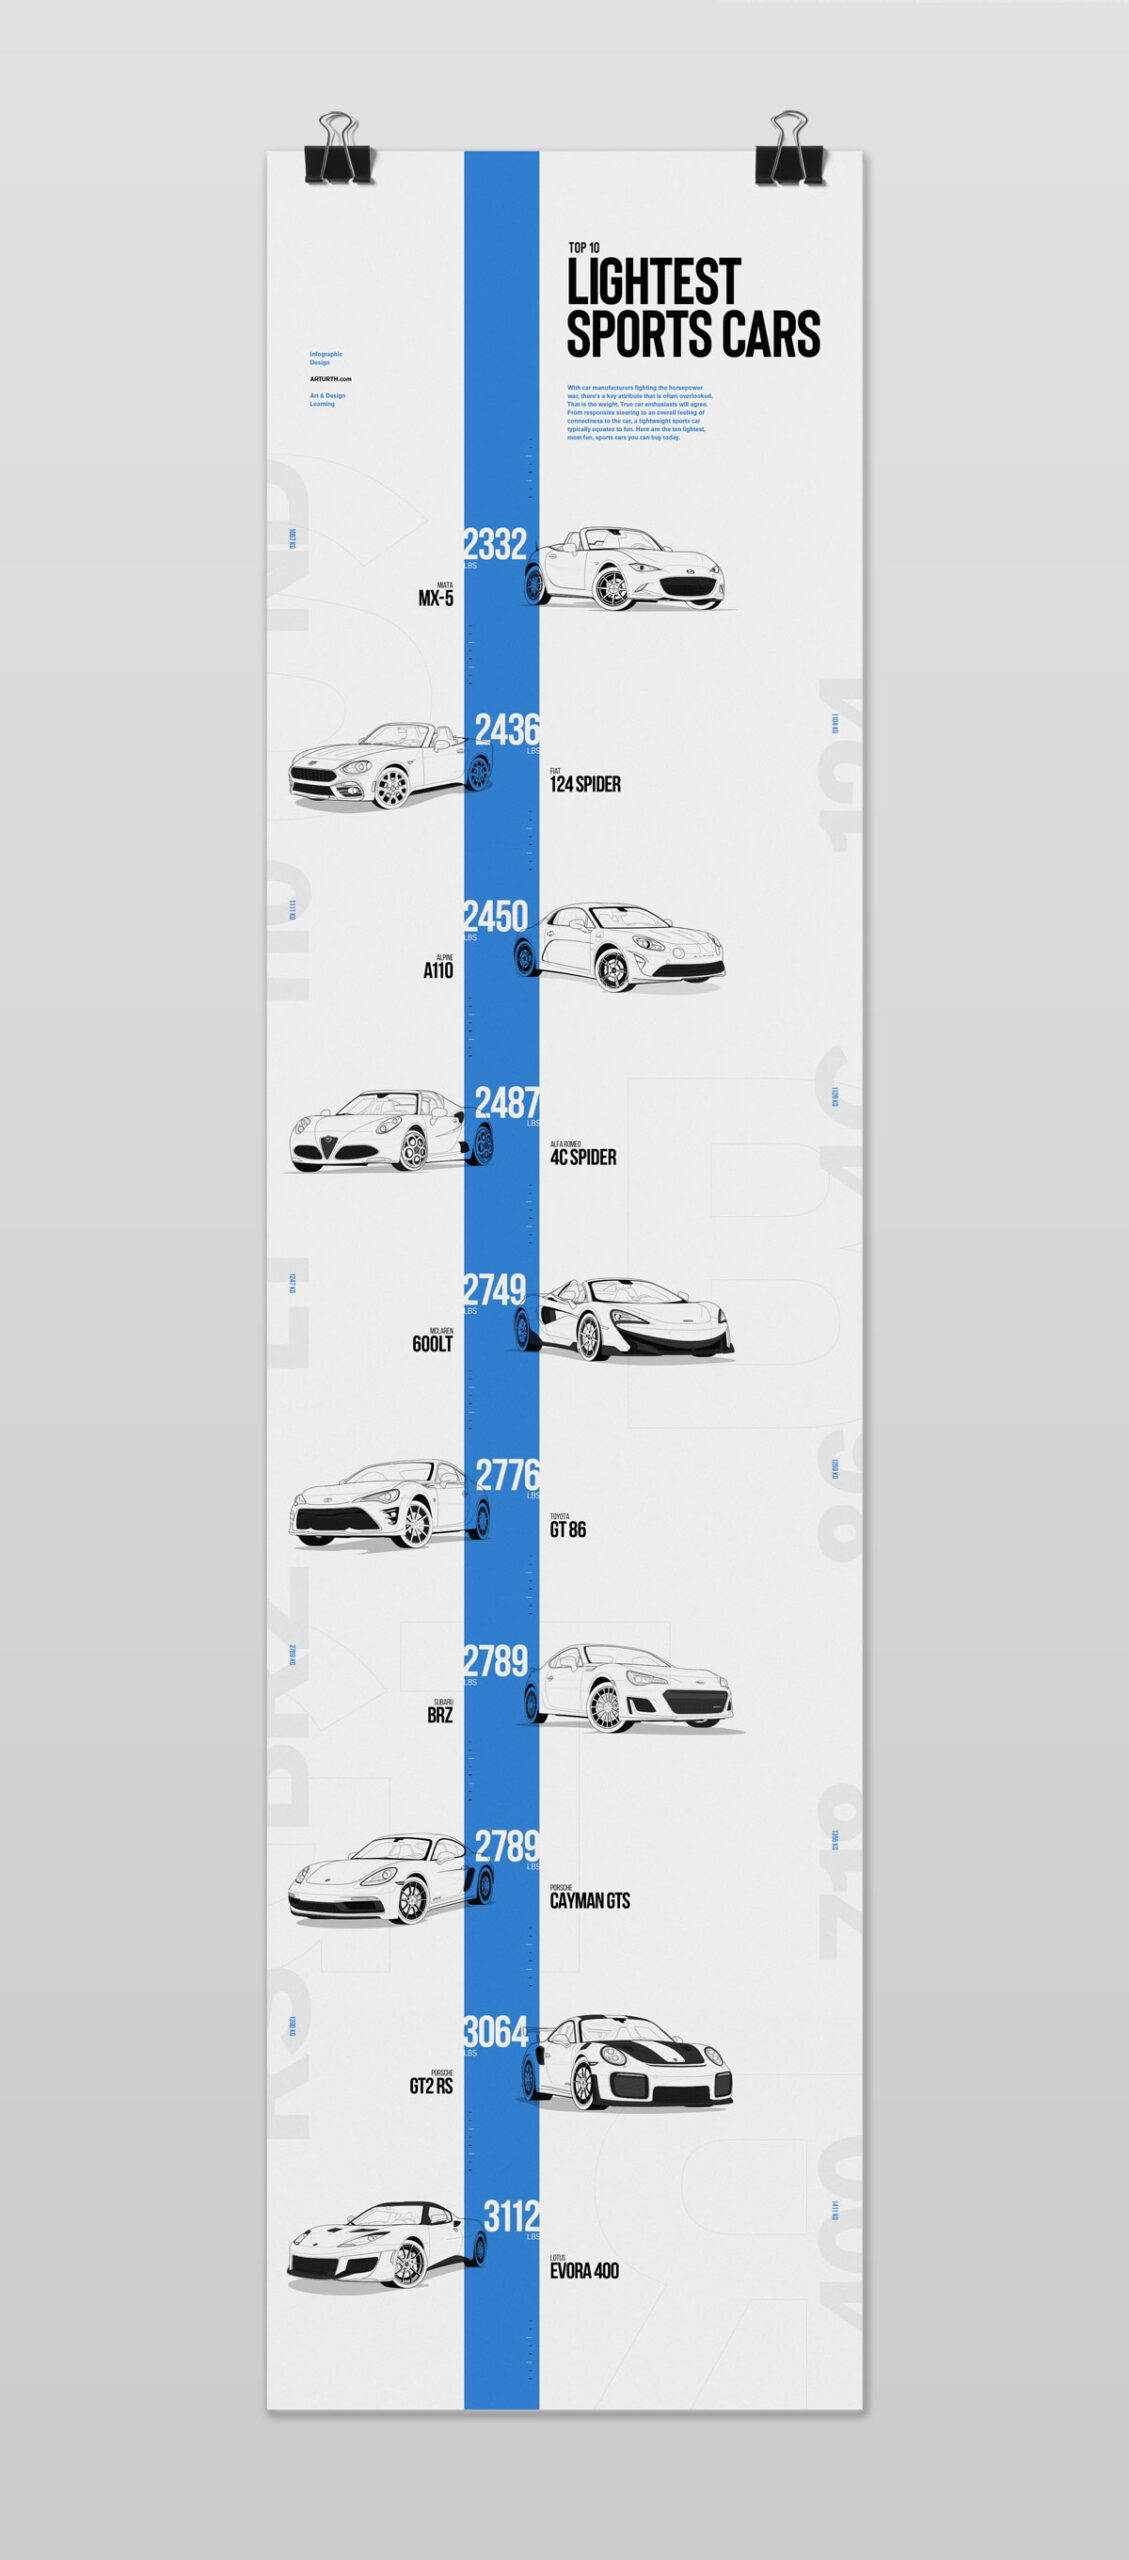 Lightest Sports Cars - Infographic